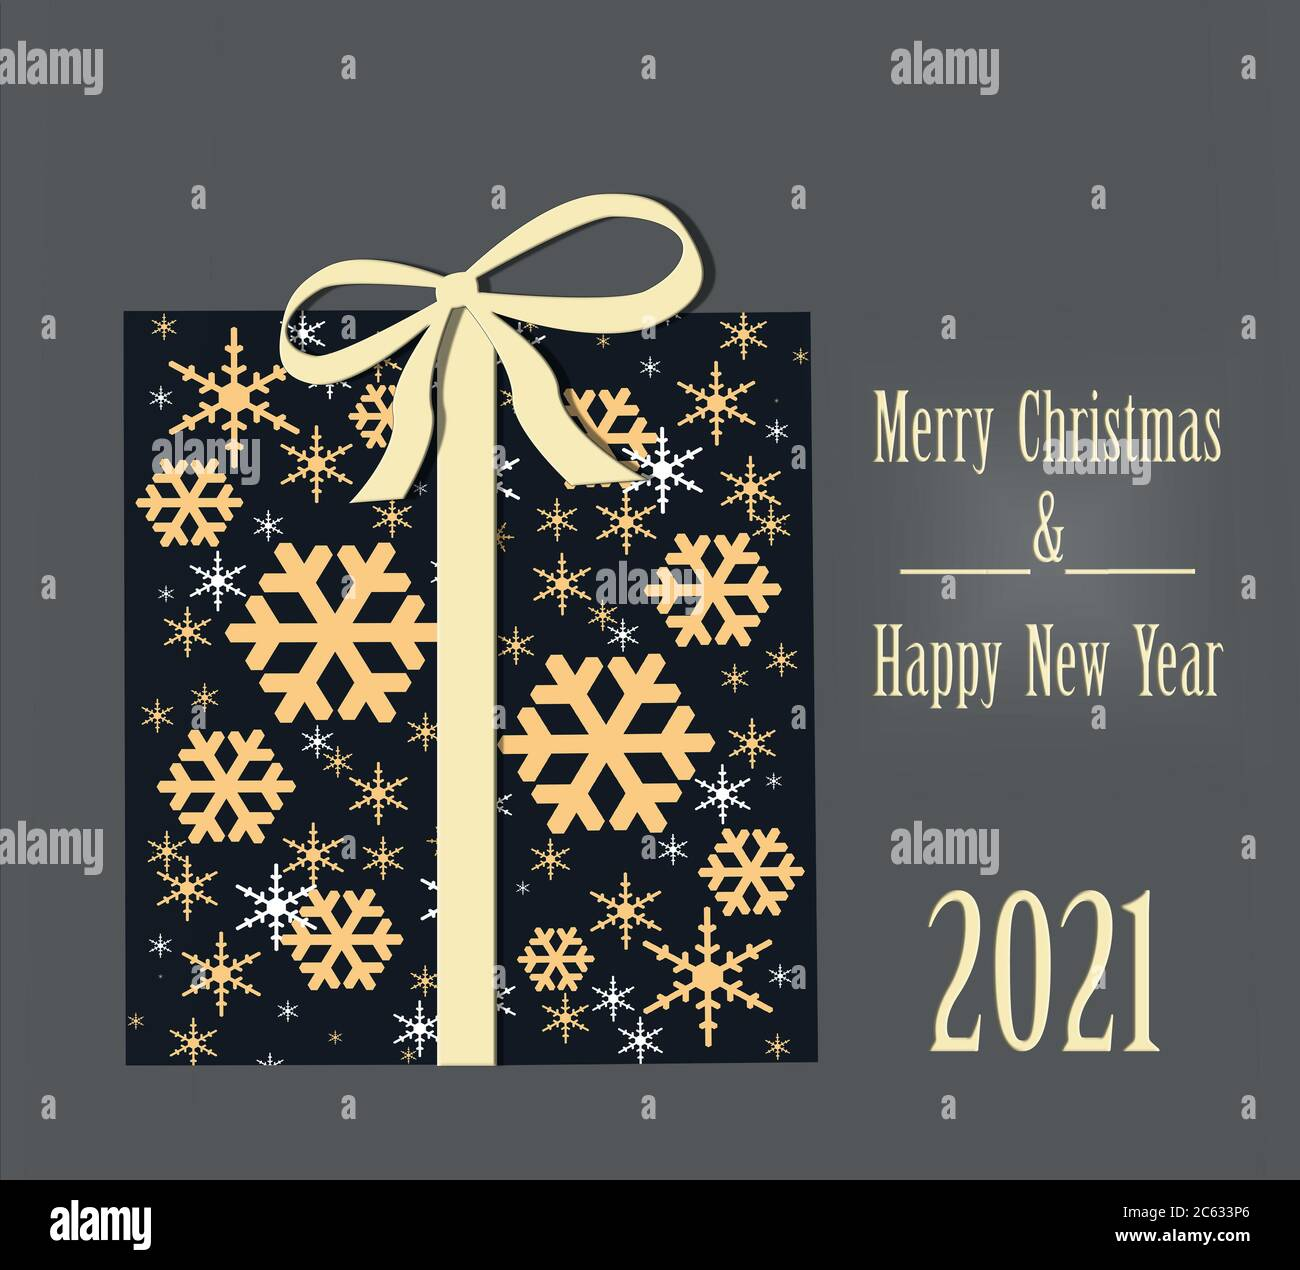 Merry Christmas 2021 Pictures Gray Luxury Christmas Greeting Card Concept With Gold Words Merry Christmas And 2021 Happy New Year Abstract Wrapped Gift Box With Golden Snowflakes On Dark Background 3d Illustration Stock Photo Alamy